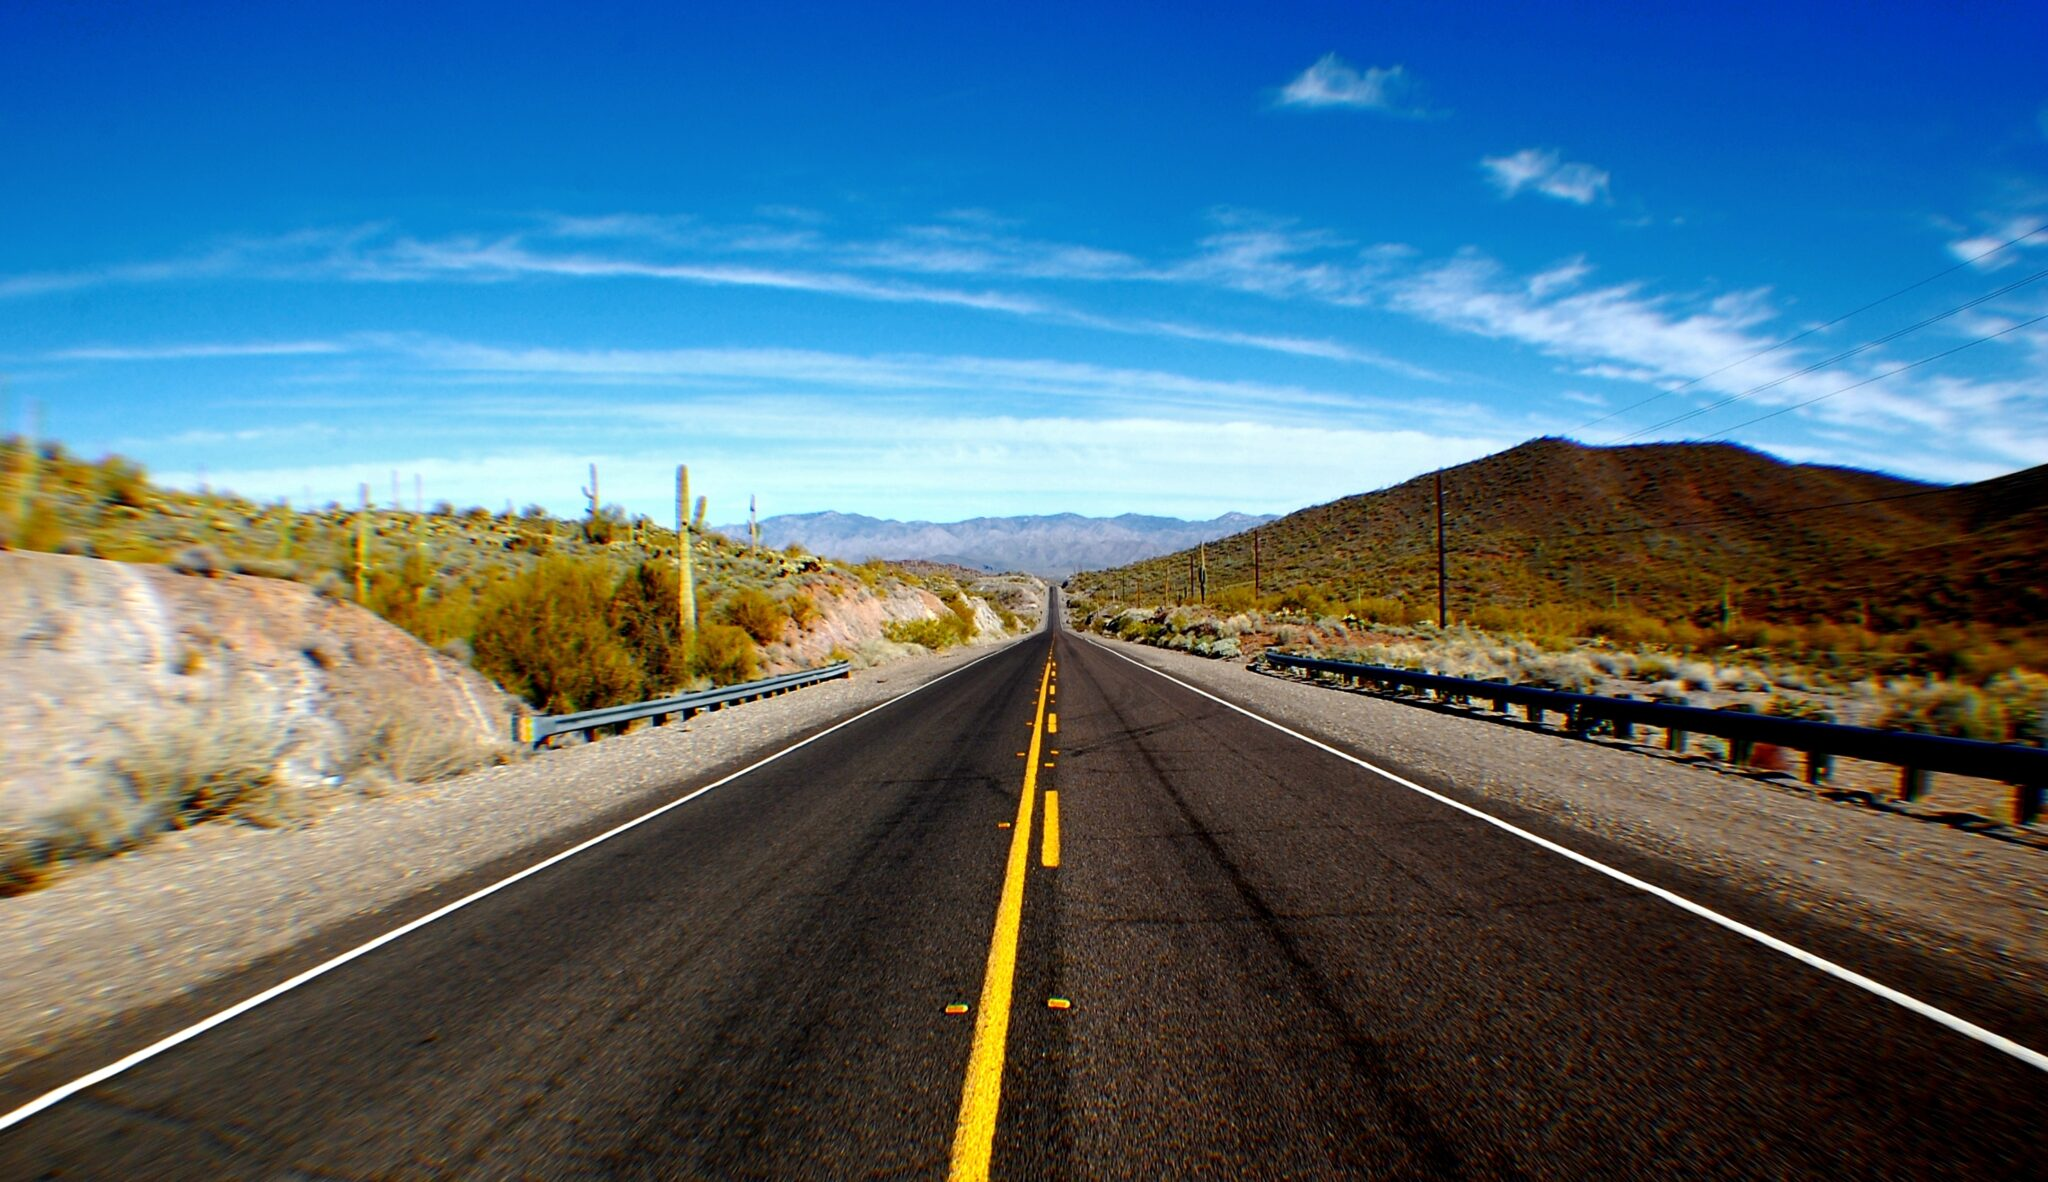 BCM Public Relations: The Road Ahead